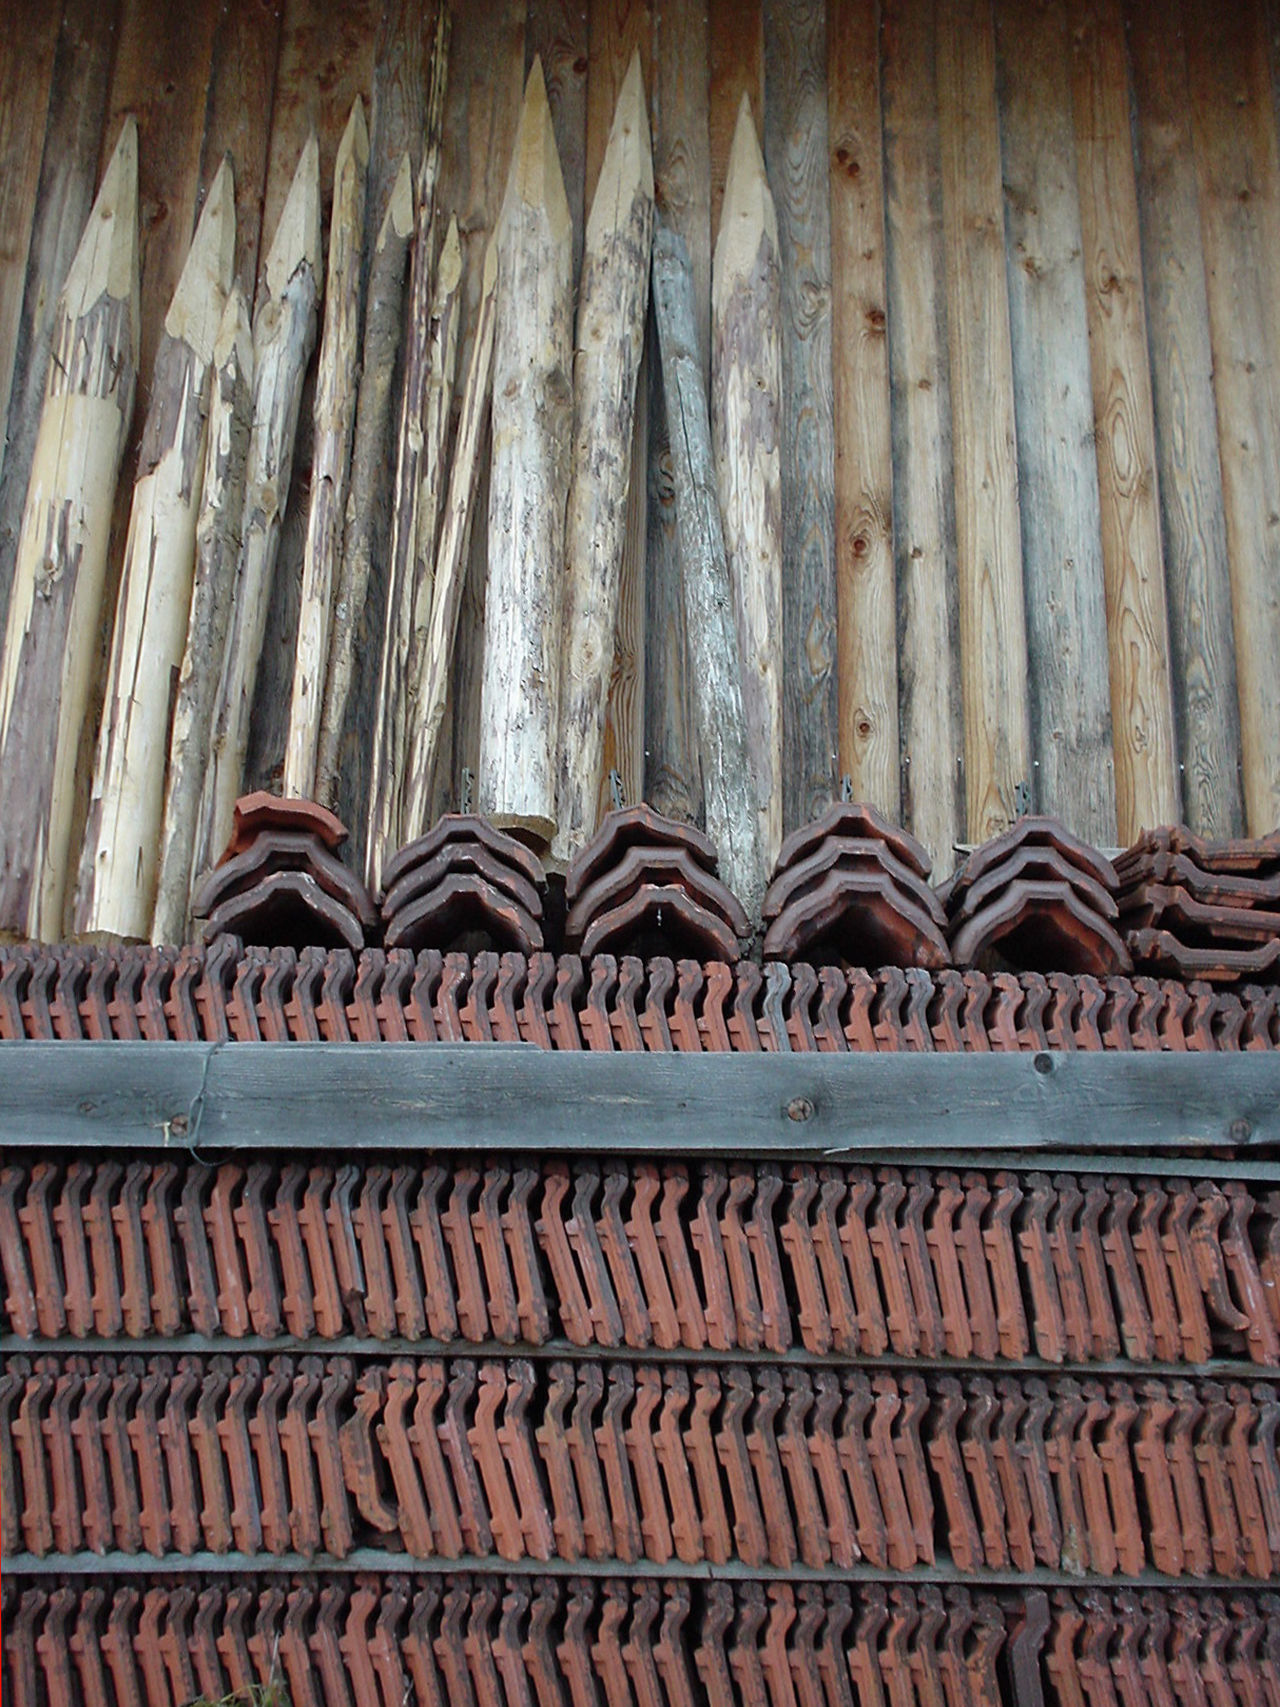 Arrangement Backgrounds In A Row Pattern Pile Piled Up Repetition Roof Tiles Side By Side Stack Terracotta Wood - Material Wooden Stakes